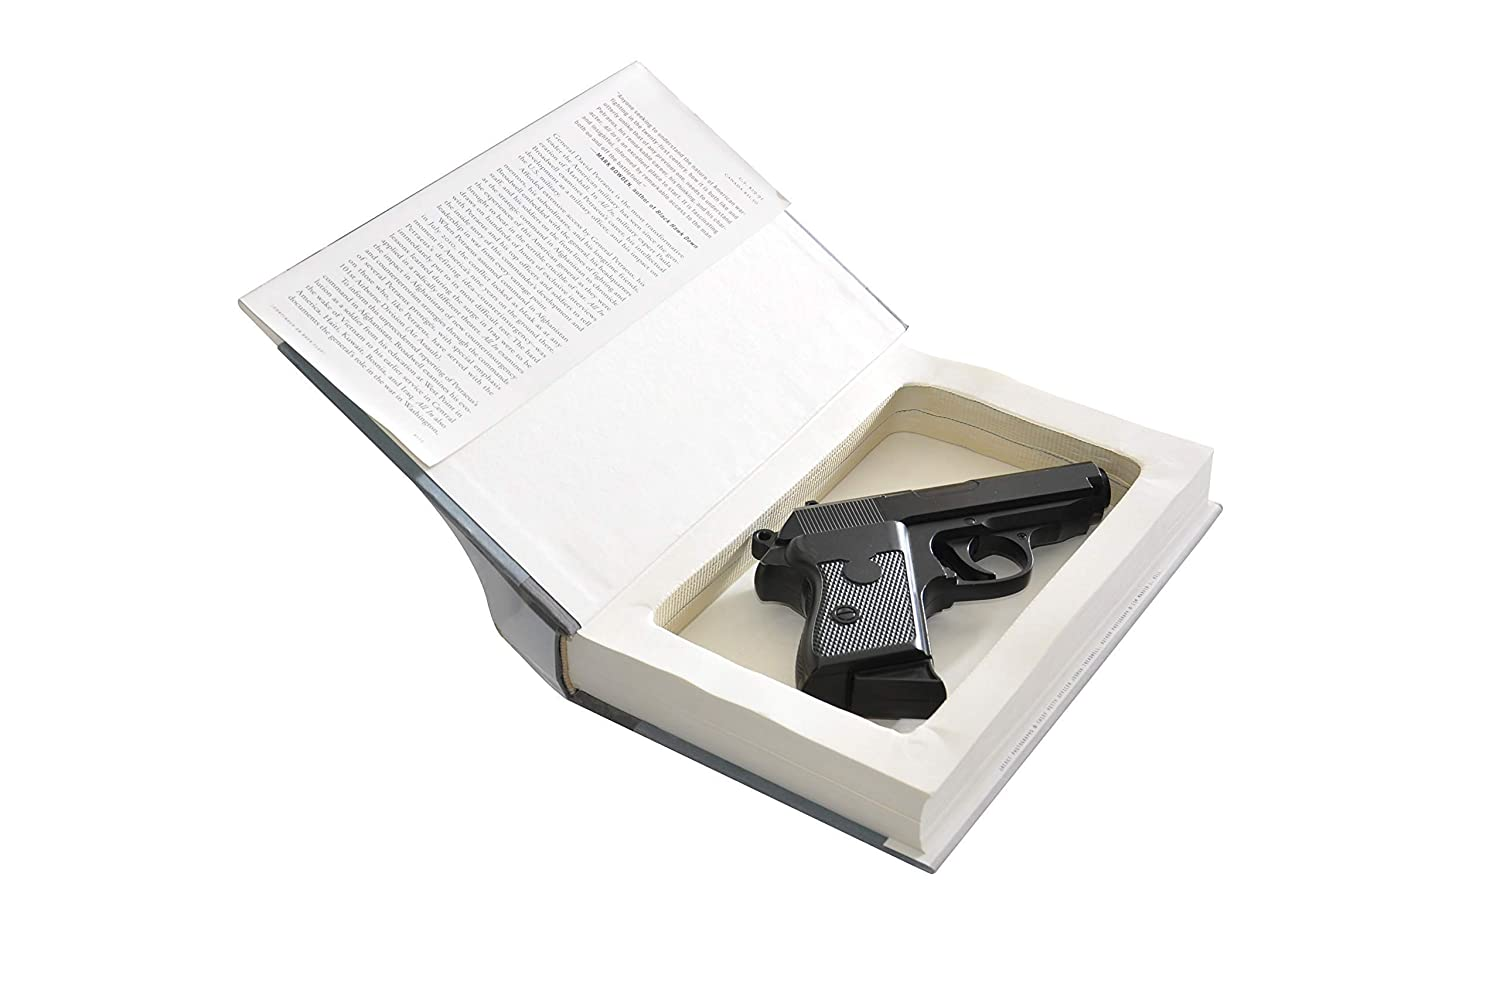 Concealment Book Safe for Subcompact Handguns - Glock Kimber Ruger S&W - Concealed Gun Storage - Home Car Defense